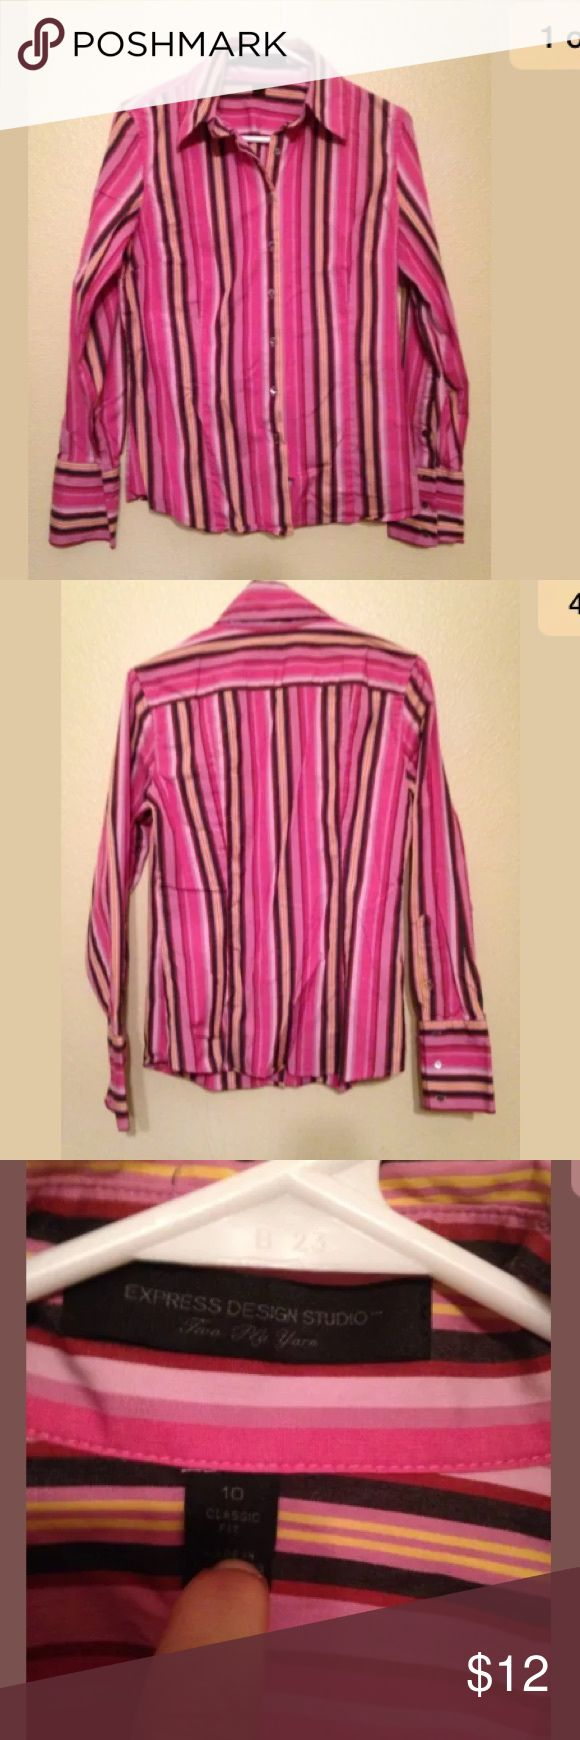 Express Design Studio Button Down Shirt Pink Sz 10 Express Design Studio Women's Sz 10 Button Down Shirt Striped Pink Classic Fit Express Tops Button Down Shirts